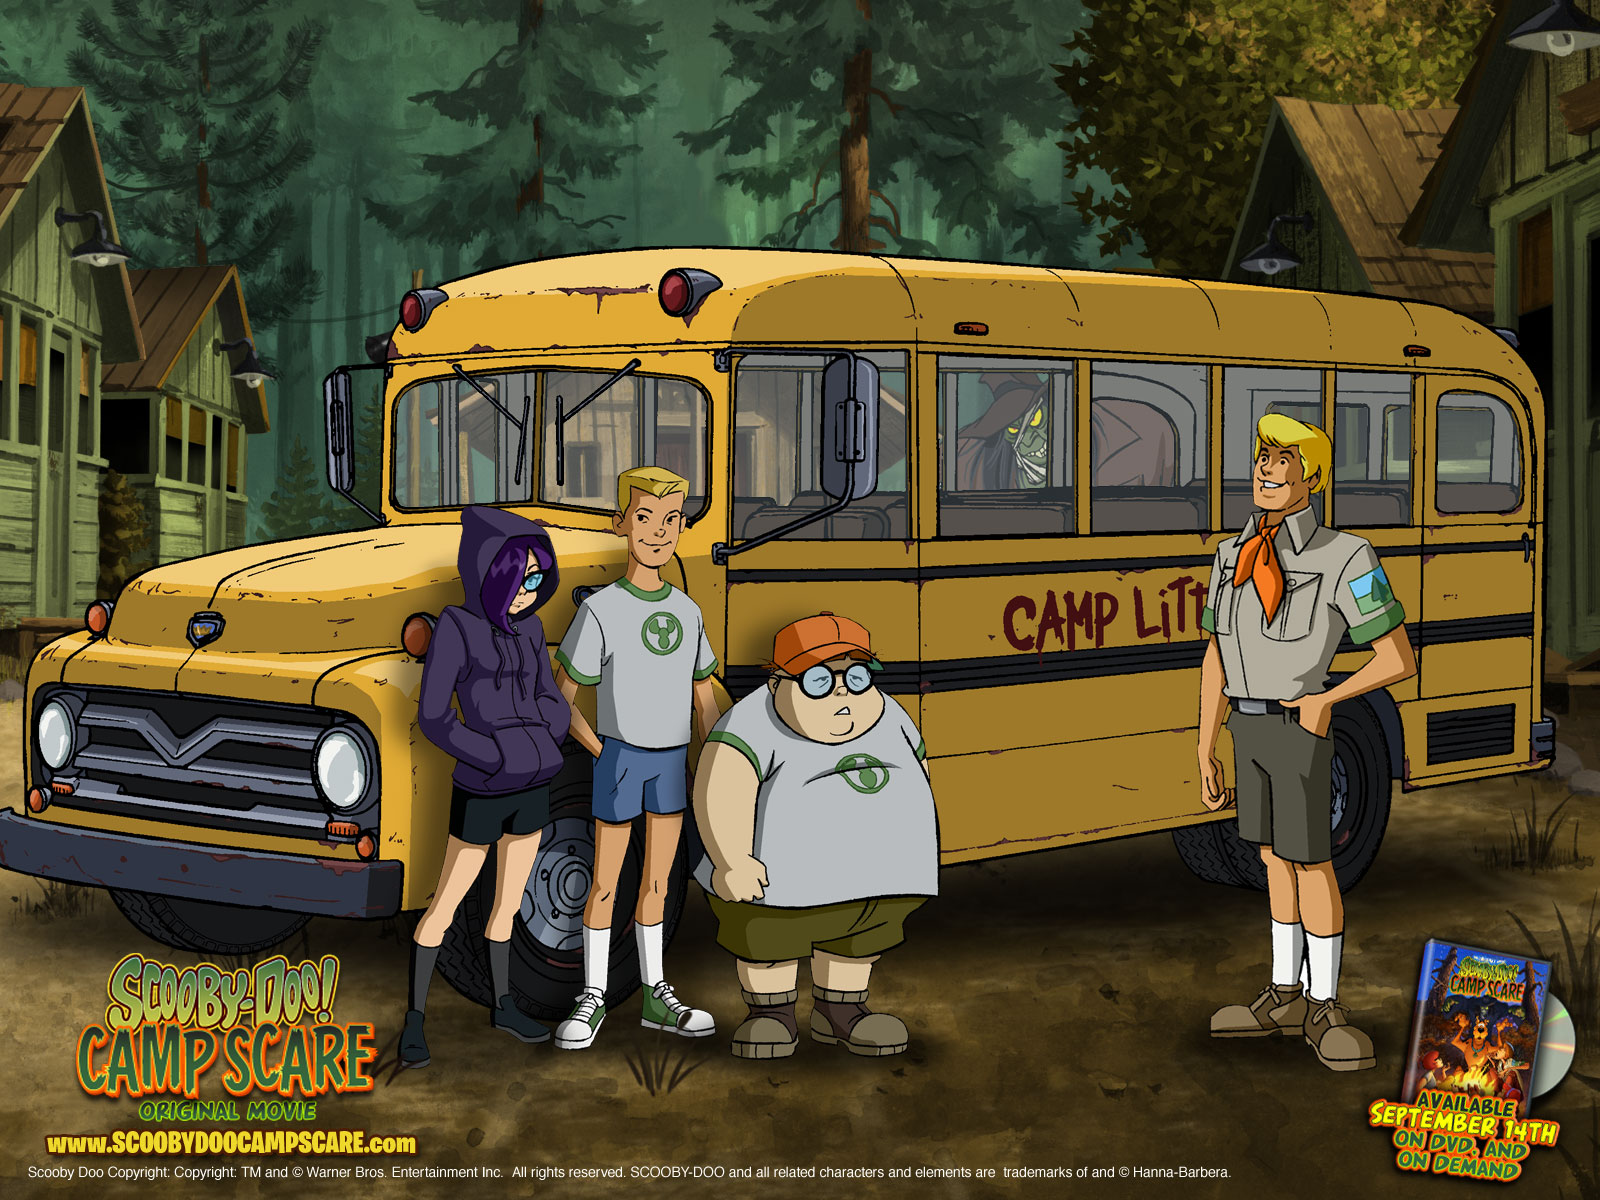 Scooby Doo Camp Scare